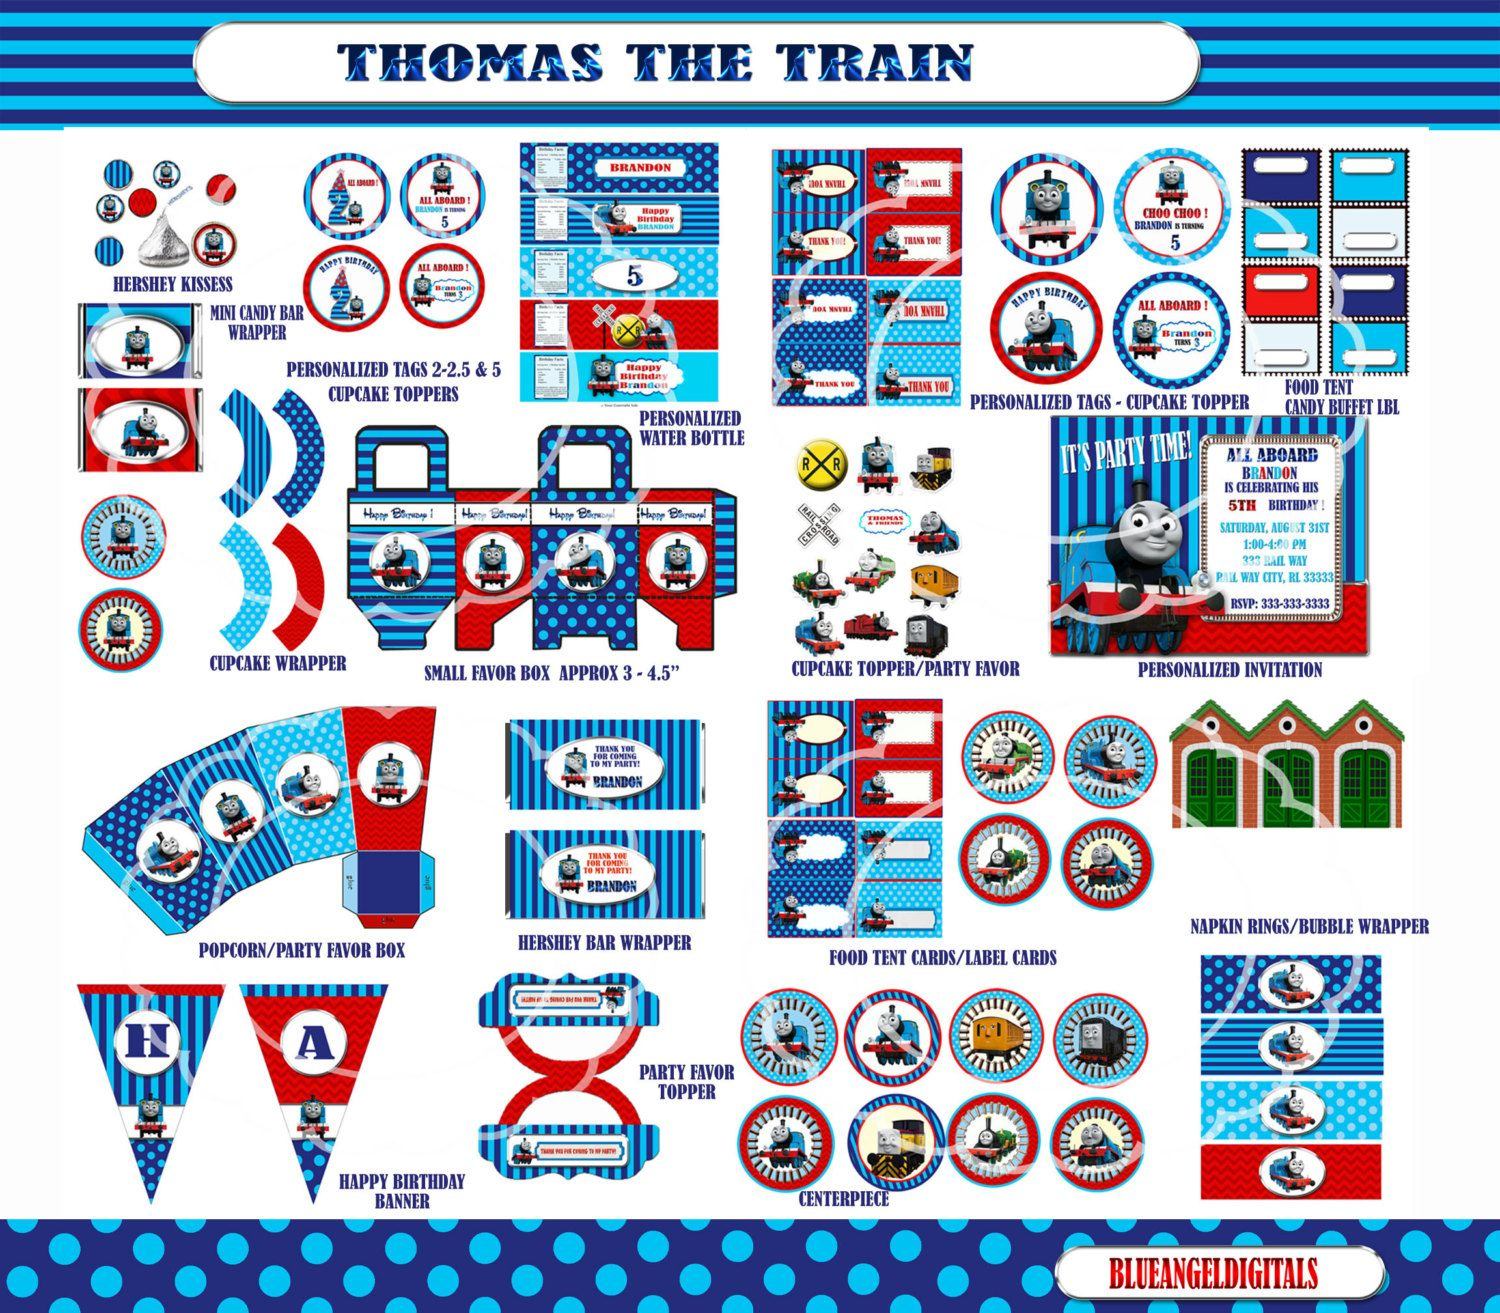 Thomas the Train Party Thomas the Train by blueangeldigitals 2199